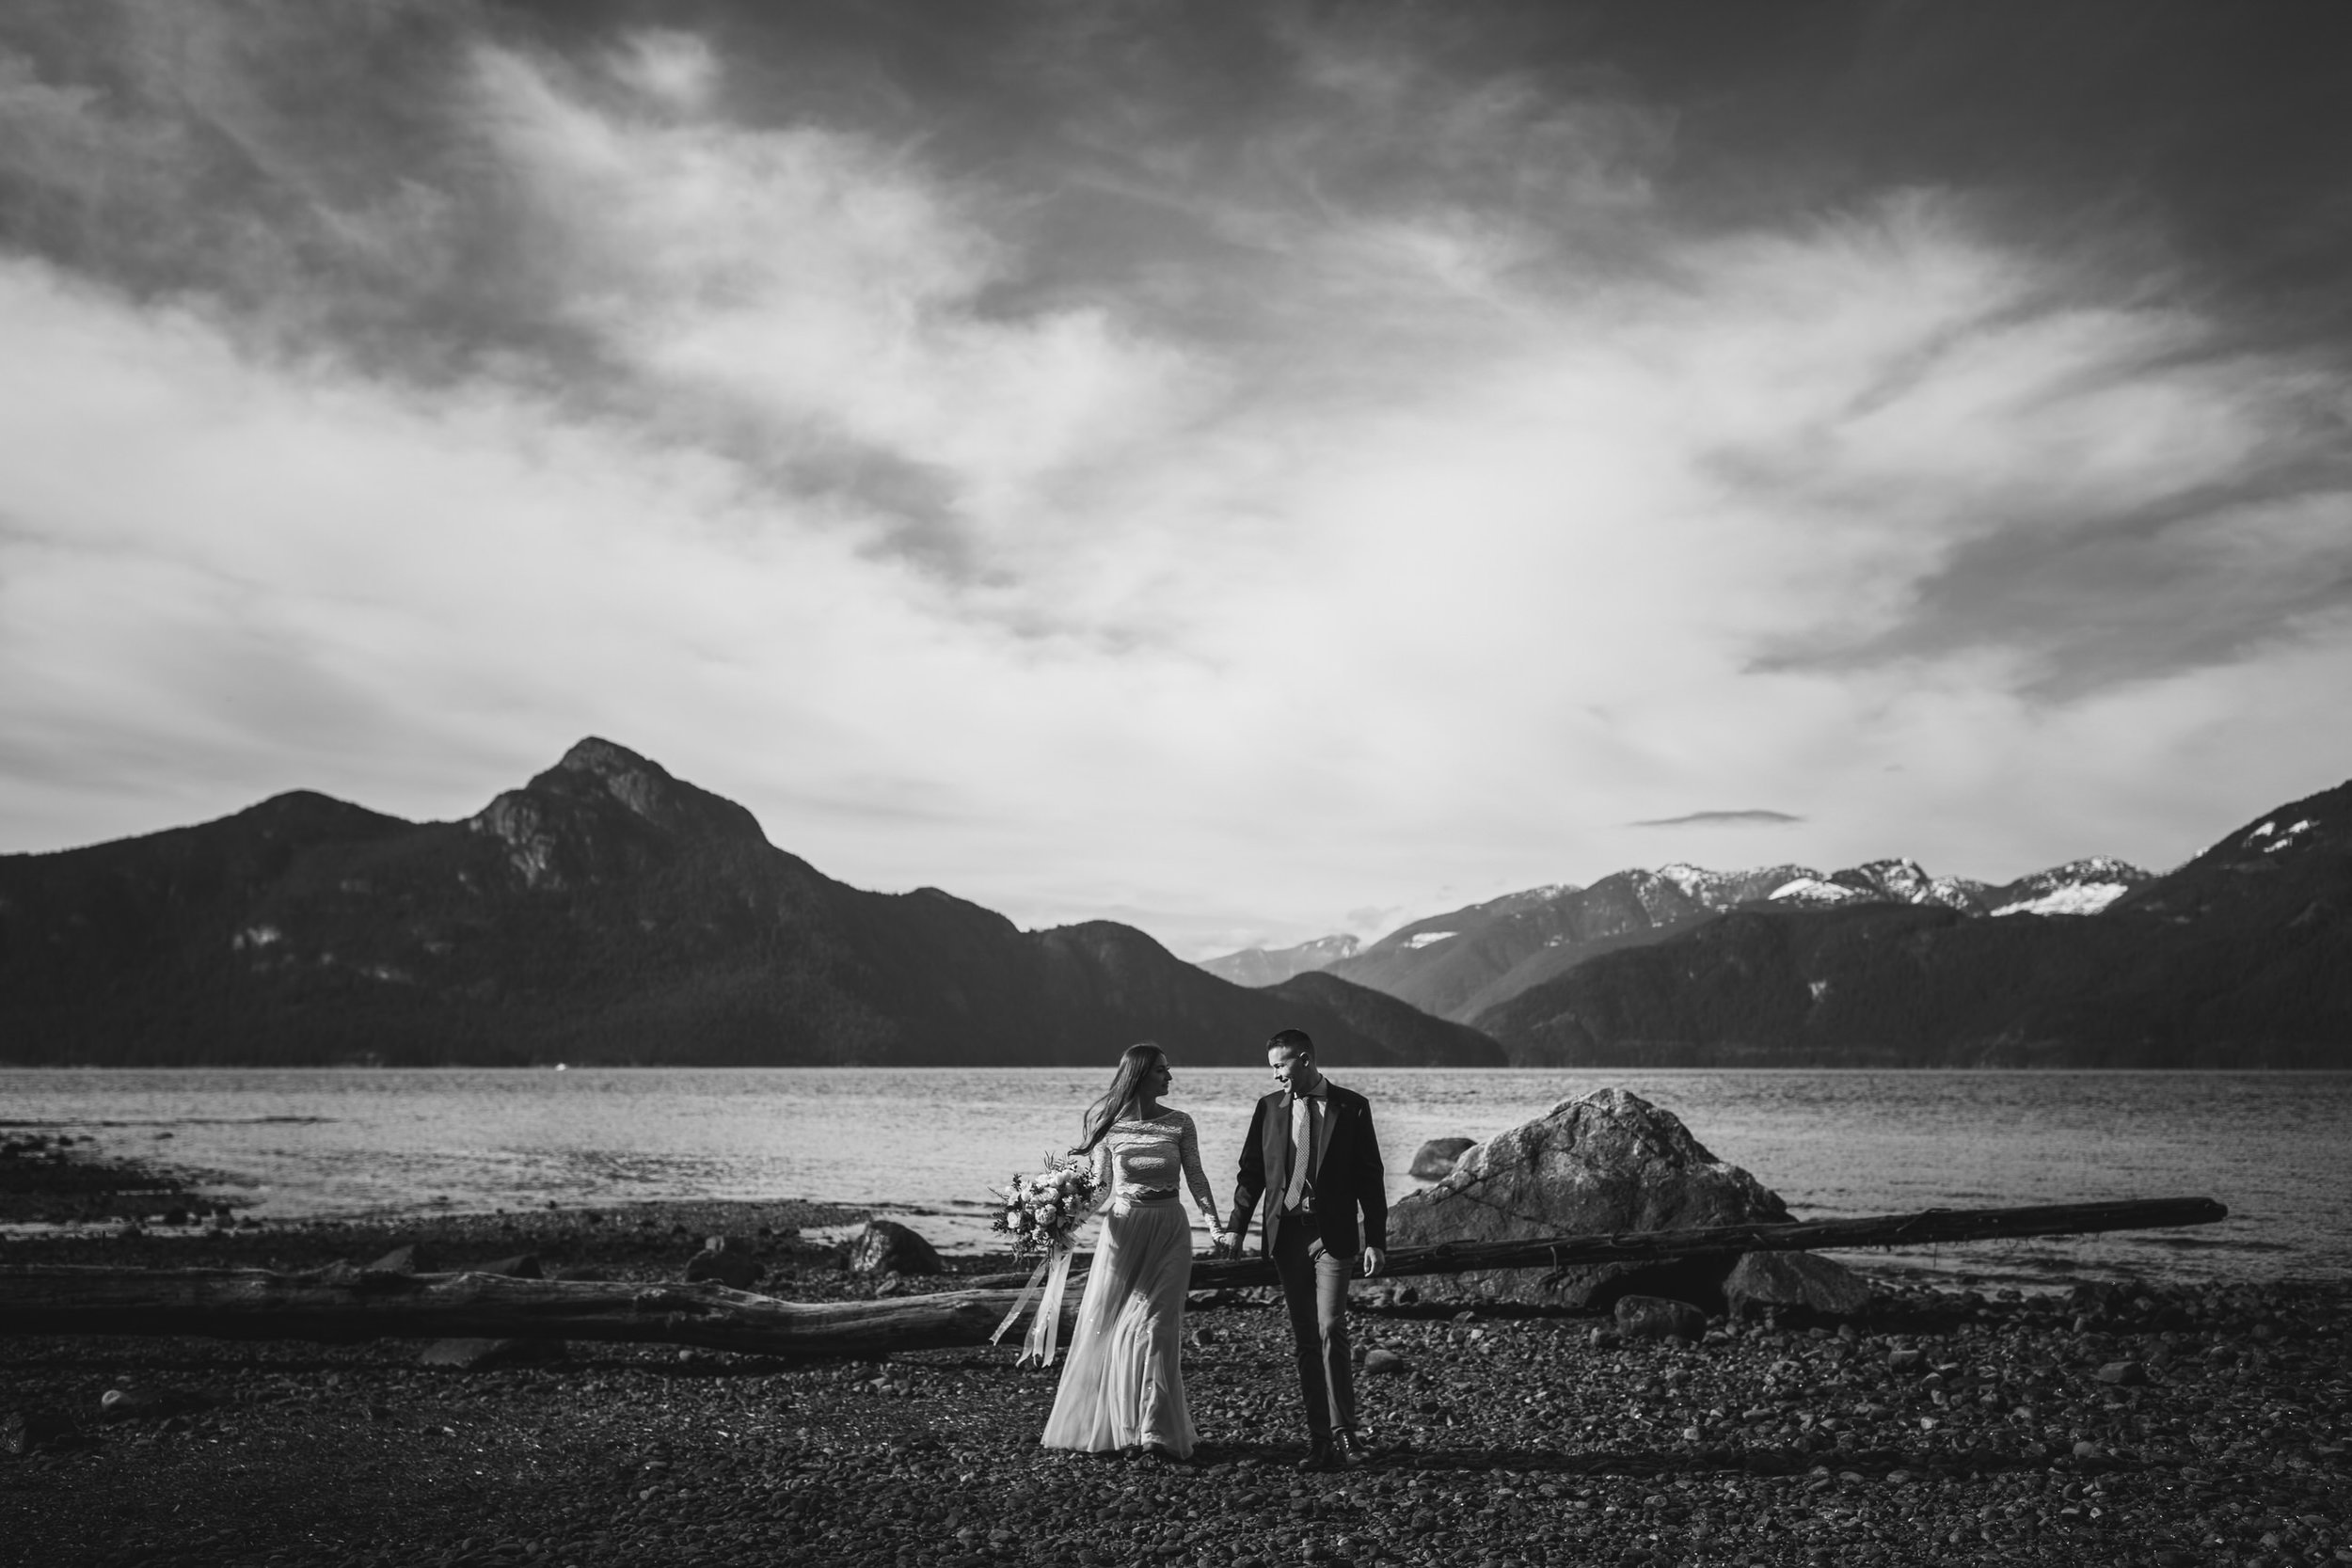 Squamish Engagement Photos - Porteau Cove Engagement Photos - Sunshine Coast Wedding Photographer - Vancouver Wedding Photographer - Squamish Wedding Photographer262.JPG